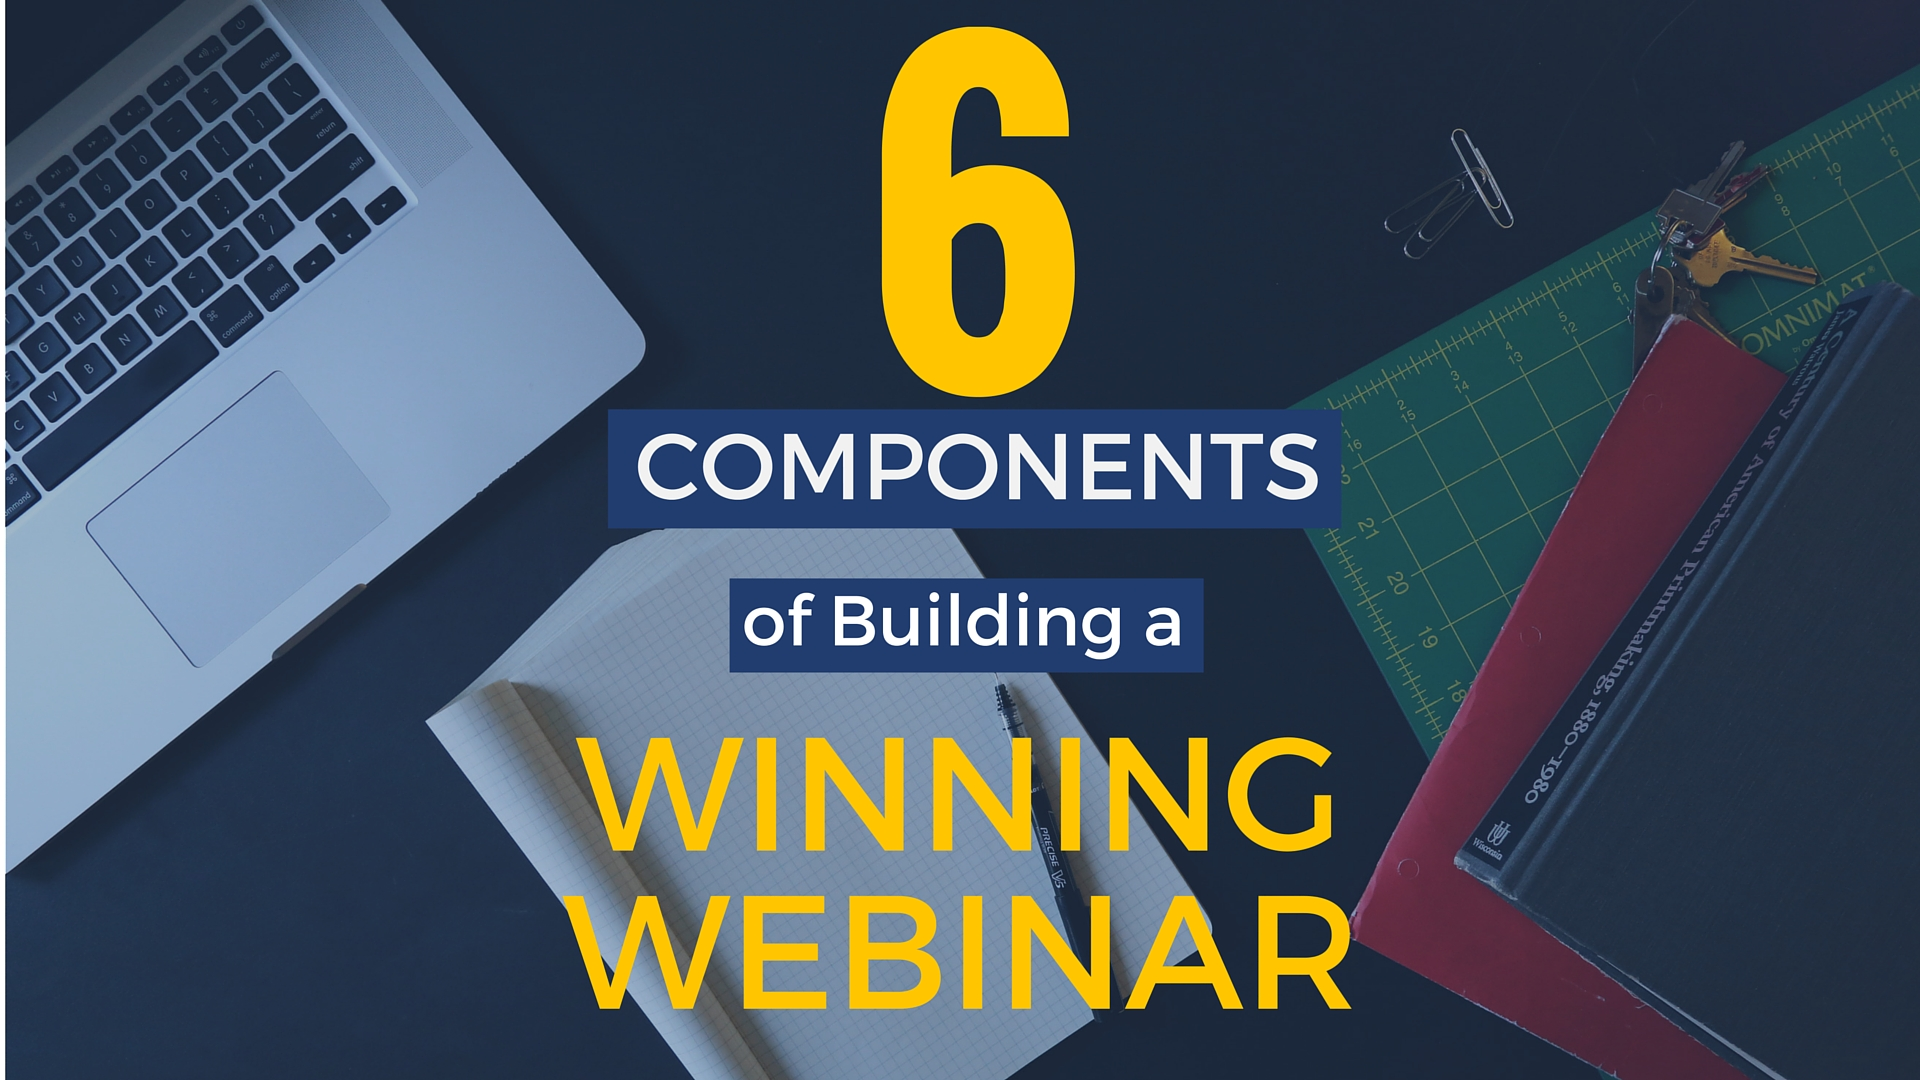 6 Components of Building a Winning Webinar